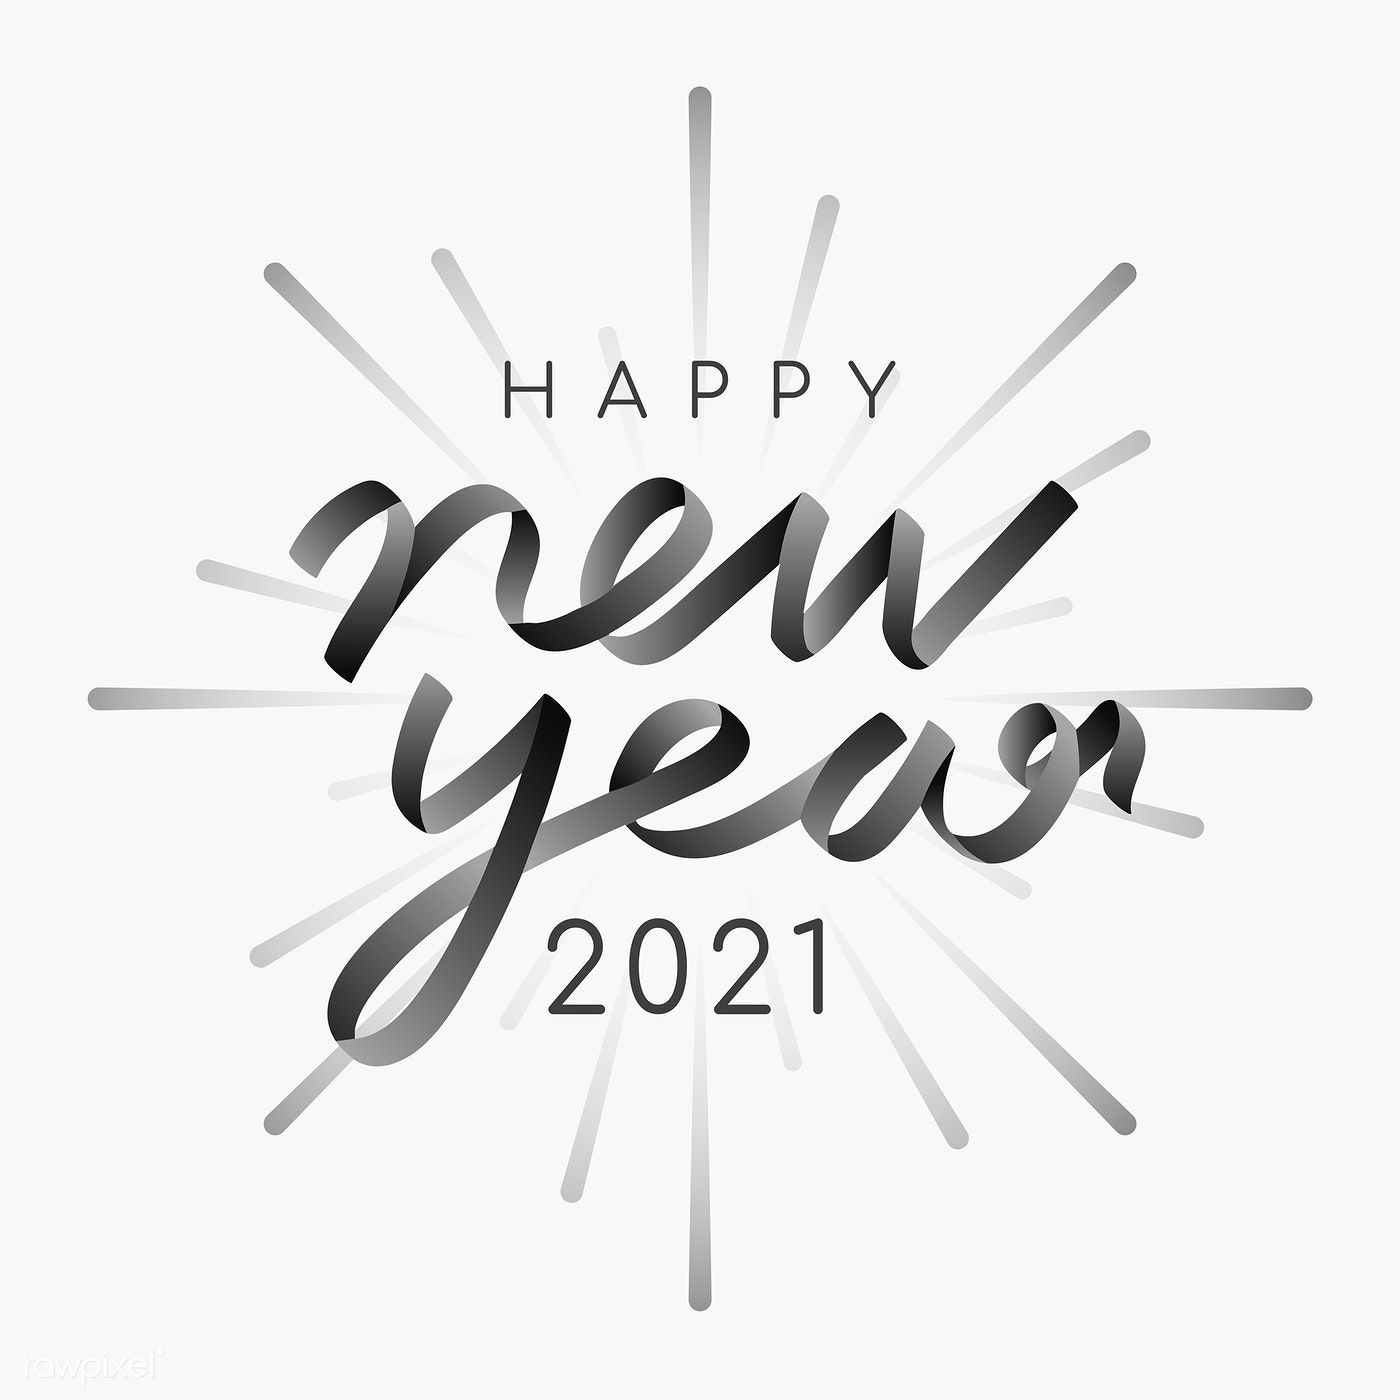 Happy New Year 2021 Transparent Png Free Image By Rawpixel Com Ningzk V Happy New Year Png New Year Card Design Happy New Year Letter